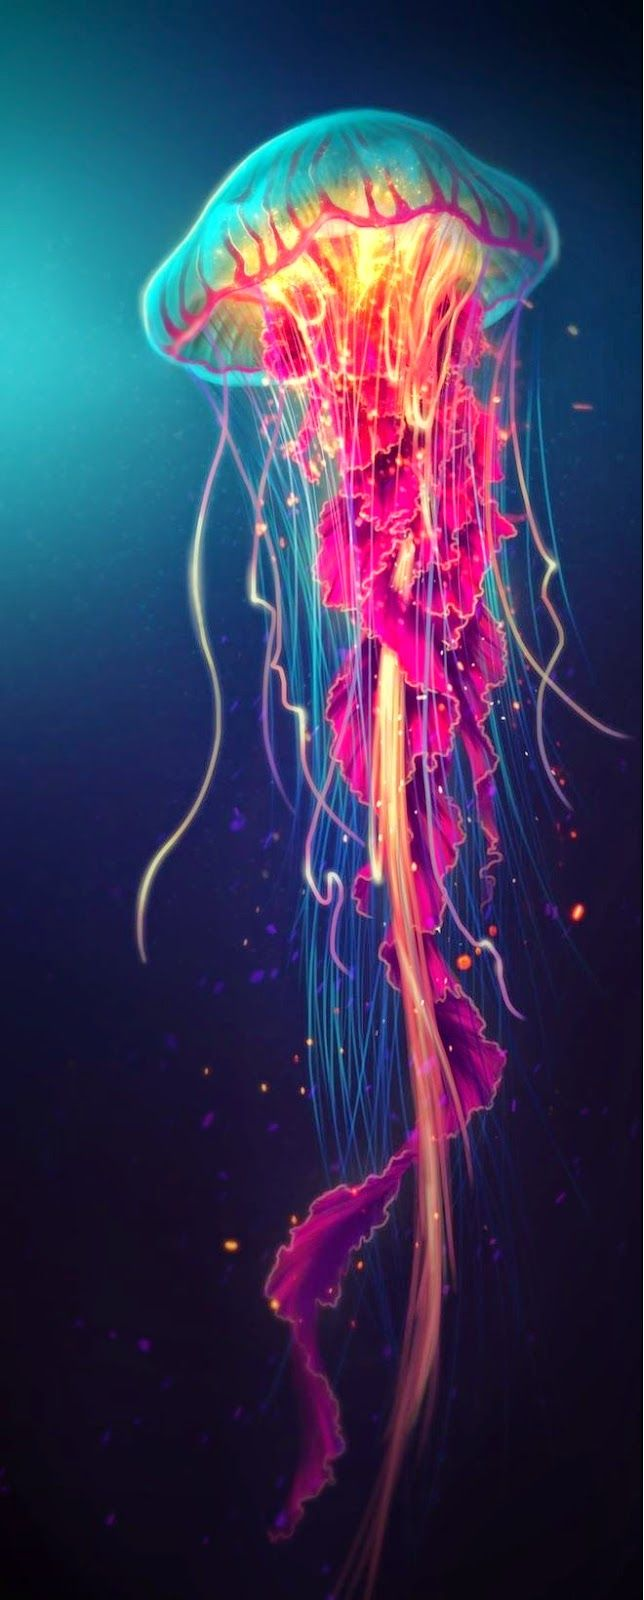 Colorful jellyfish. #jellyfish #underwater #colors